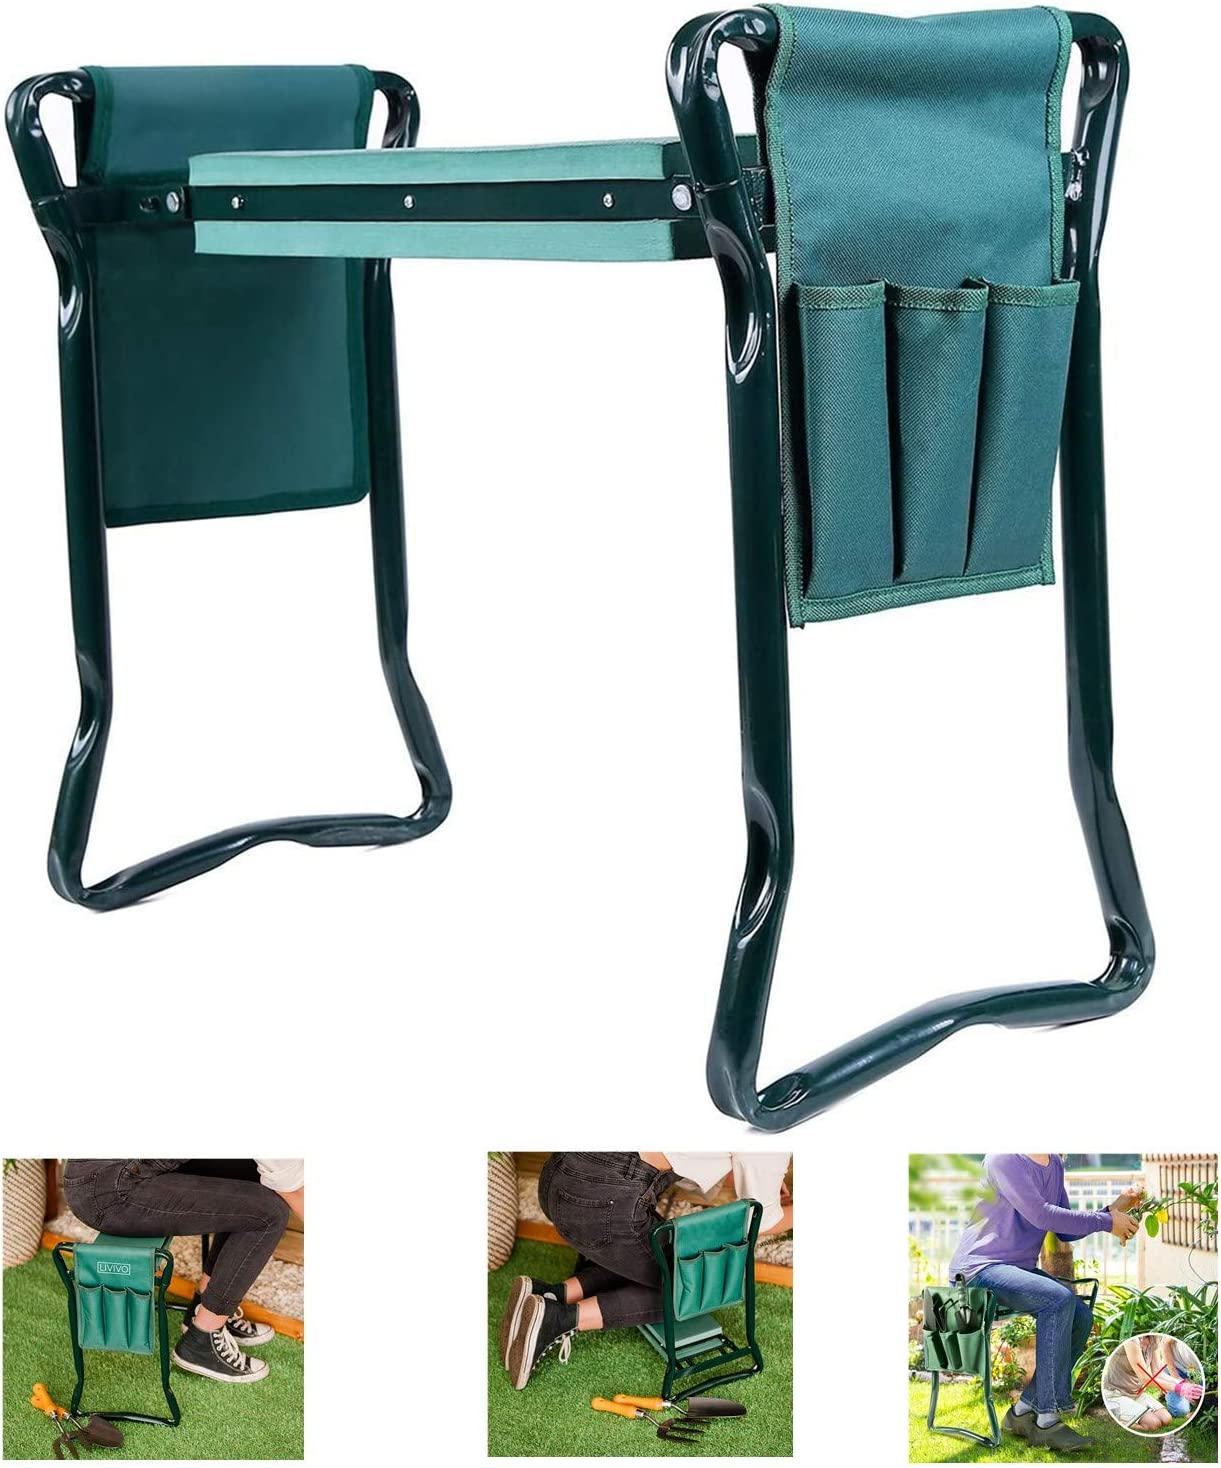 LISHAN Garden Kneeler and Seat with 2 Bonus Tool Pouches 2-in-1 Foldable, Portable Kneeler for Gardening Gardeners Garden Bench Garden Stools (Green)